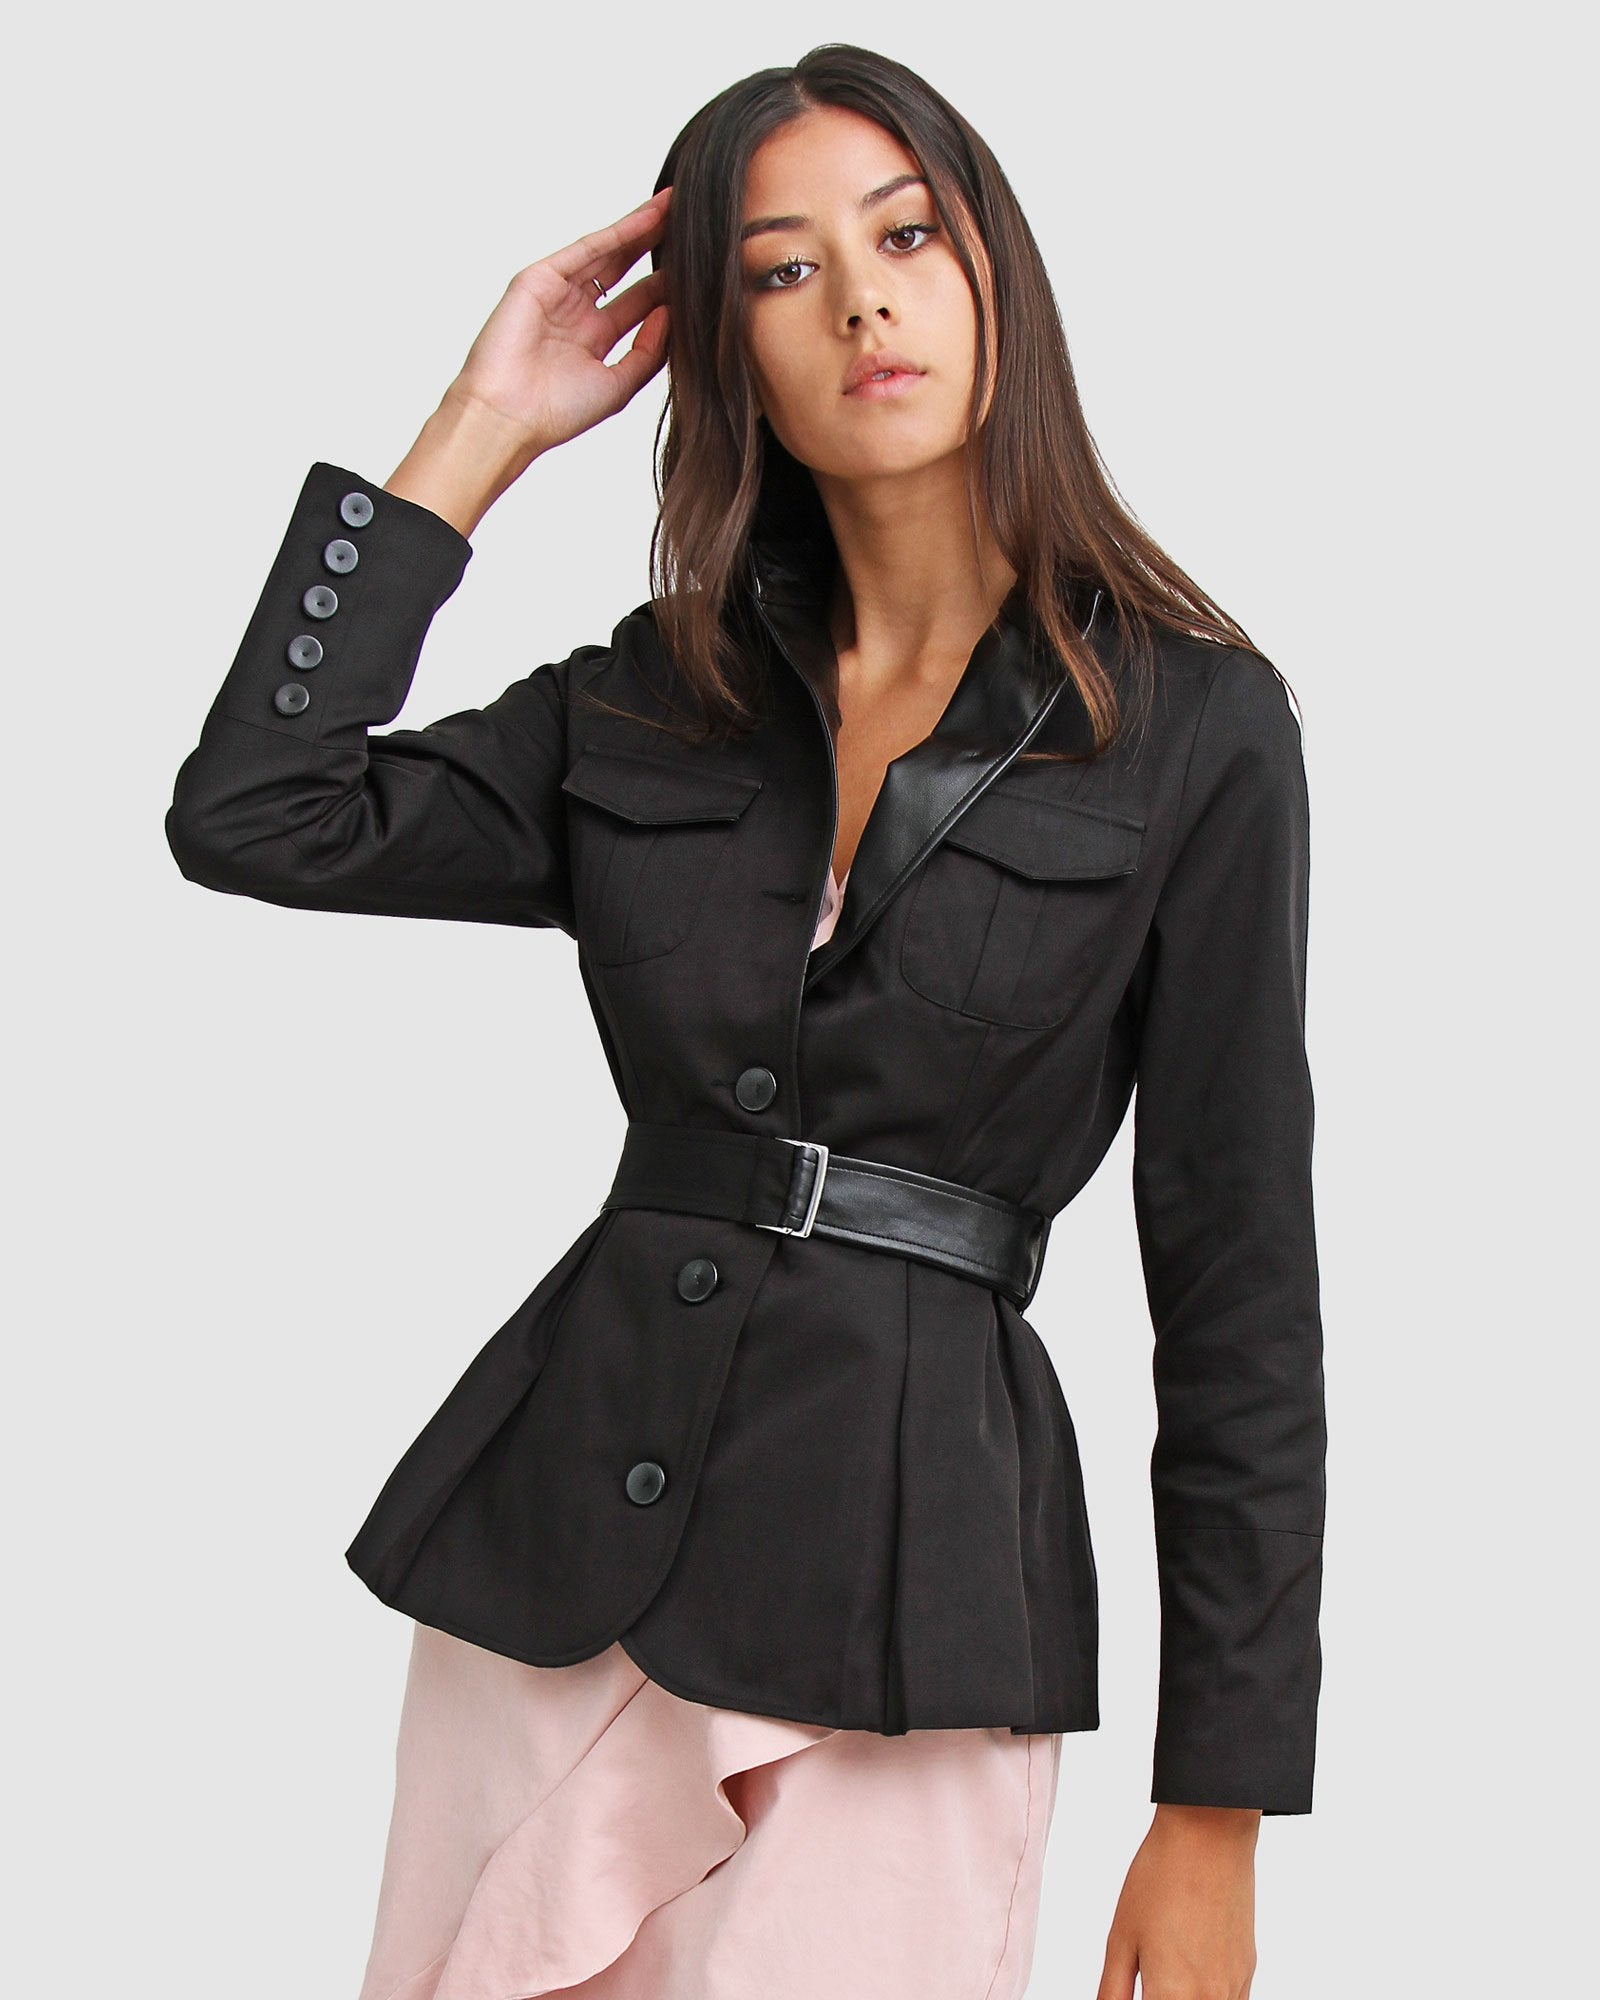 black-belted-jacket-with-vegal-leather-details.jpg